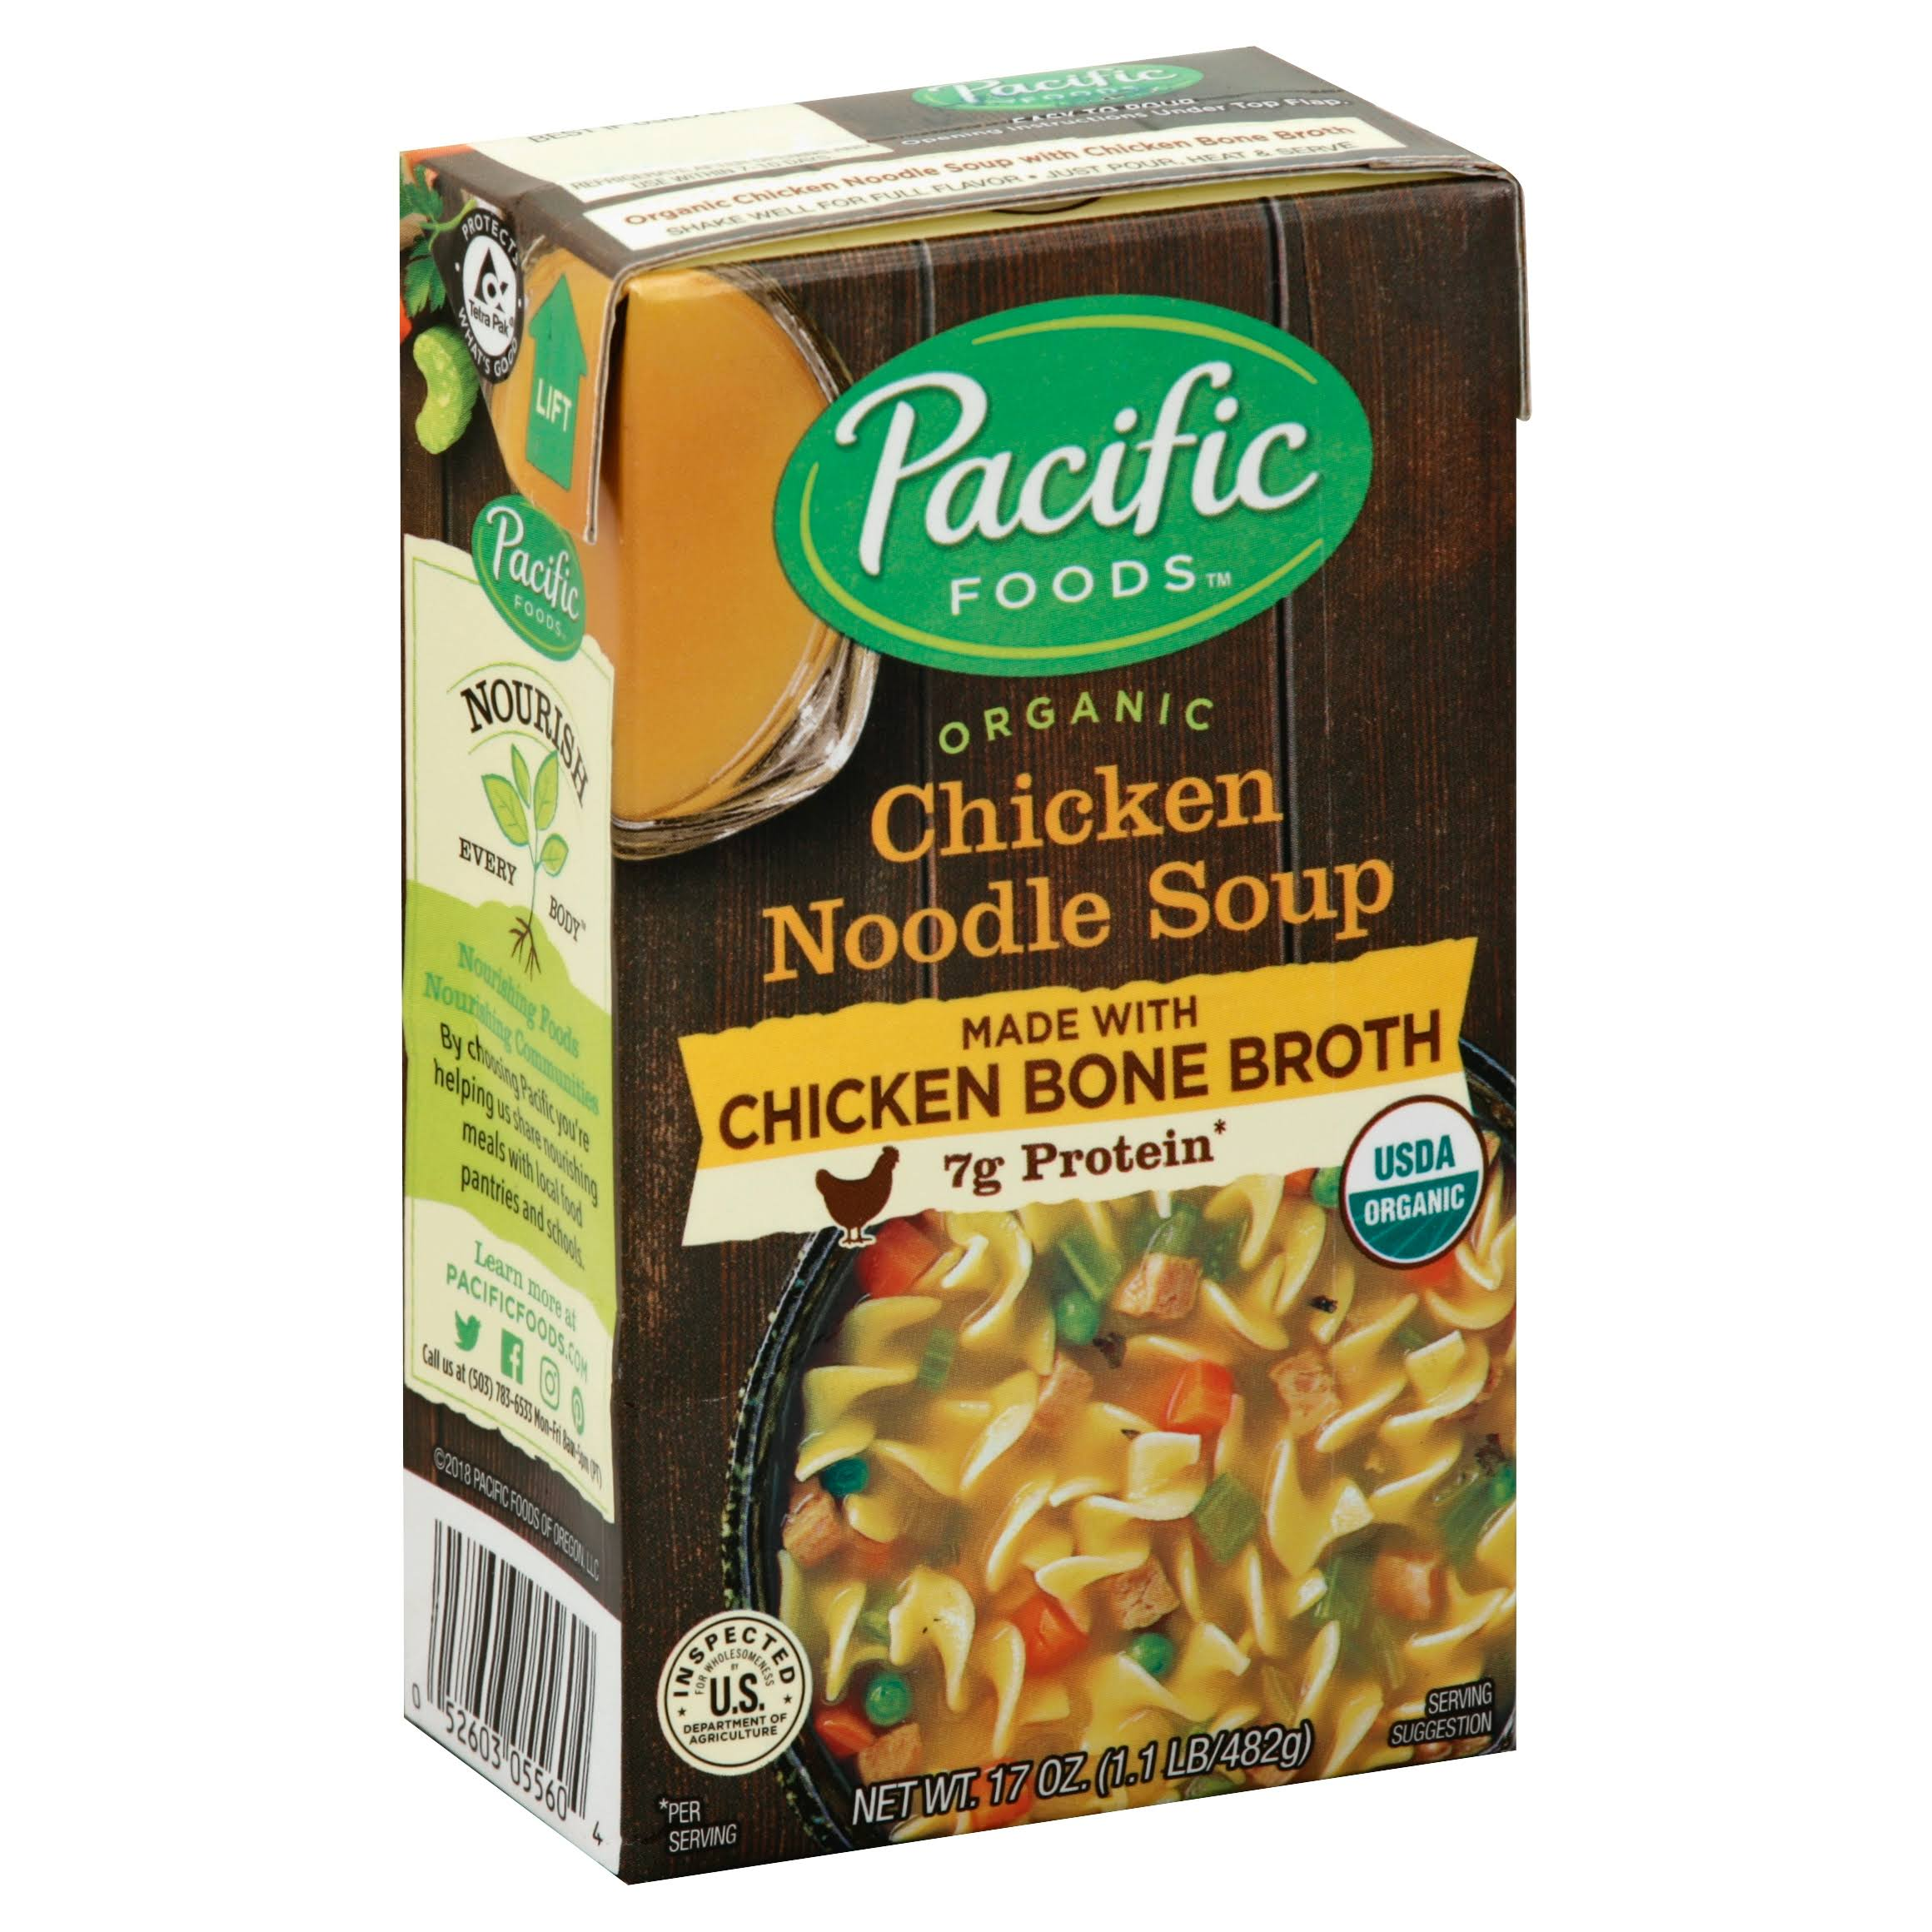 Pacific Chicken Noodle Soup, Organic - 17 oz